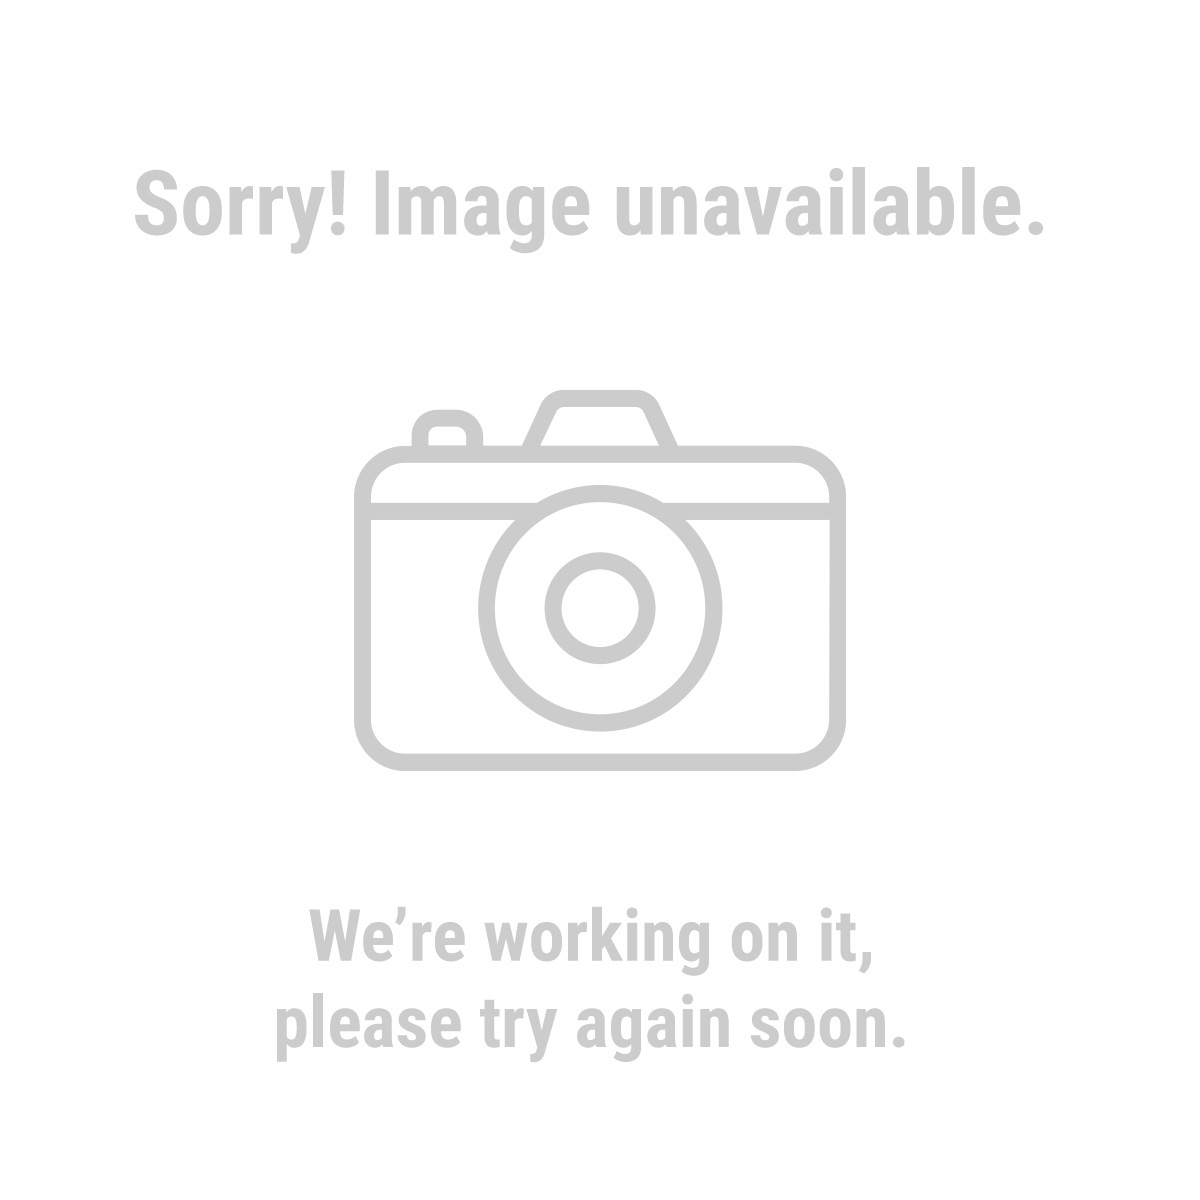 Cen-Tech® 60725 Non-Contact Infrared Thermometer with Laser Targeting